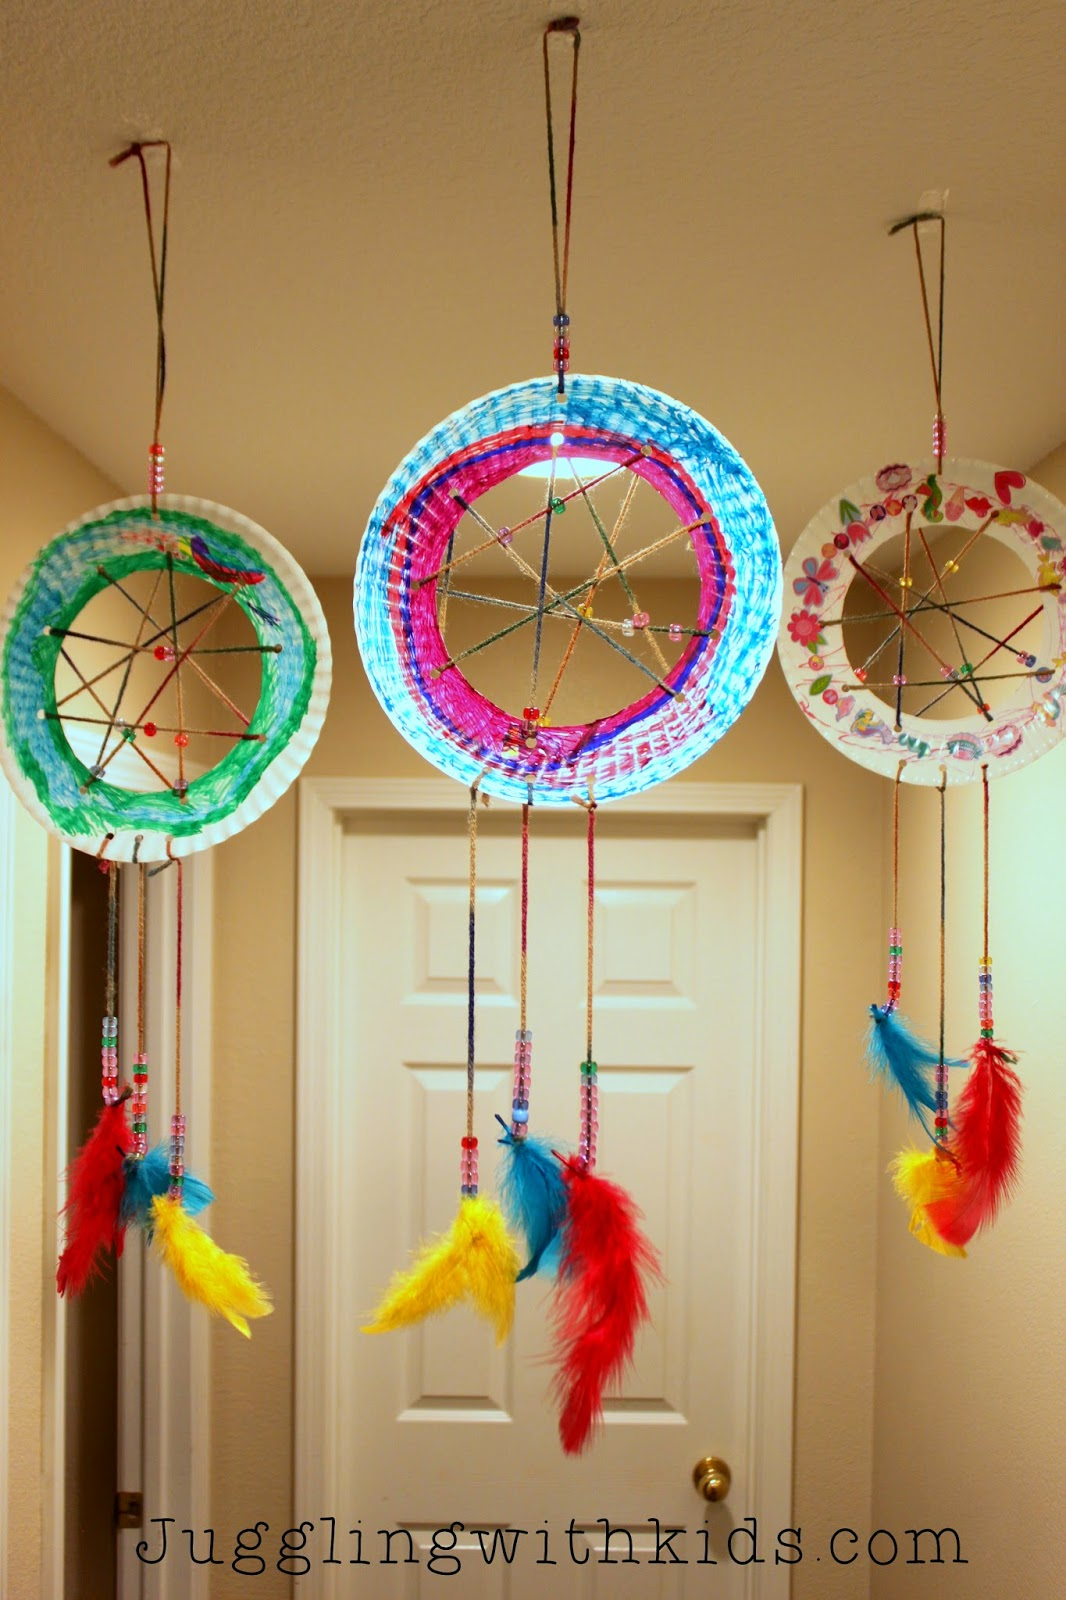 Juggling With Kids The Ultimate Guide To Feathers And Our